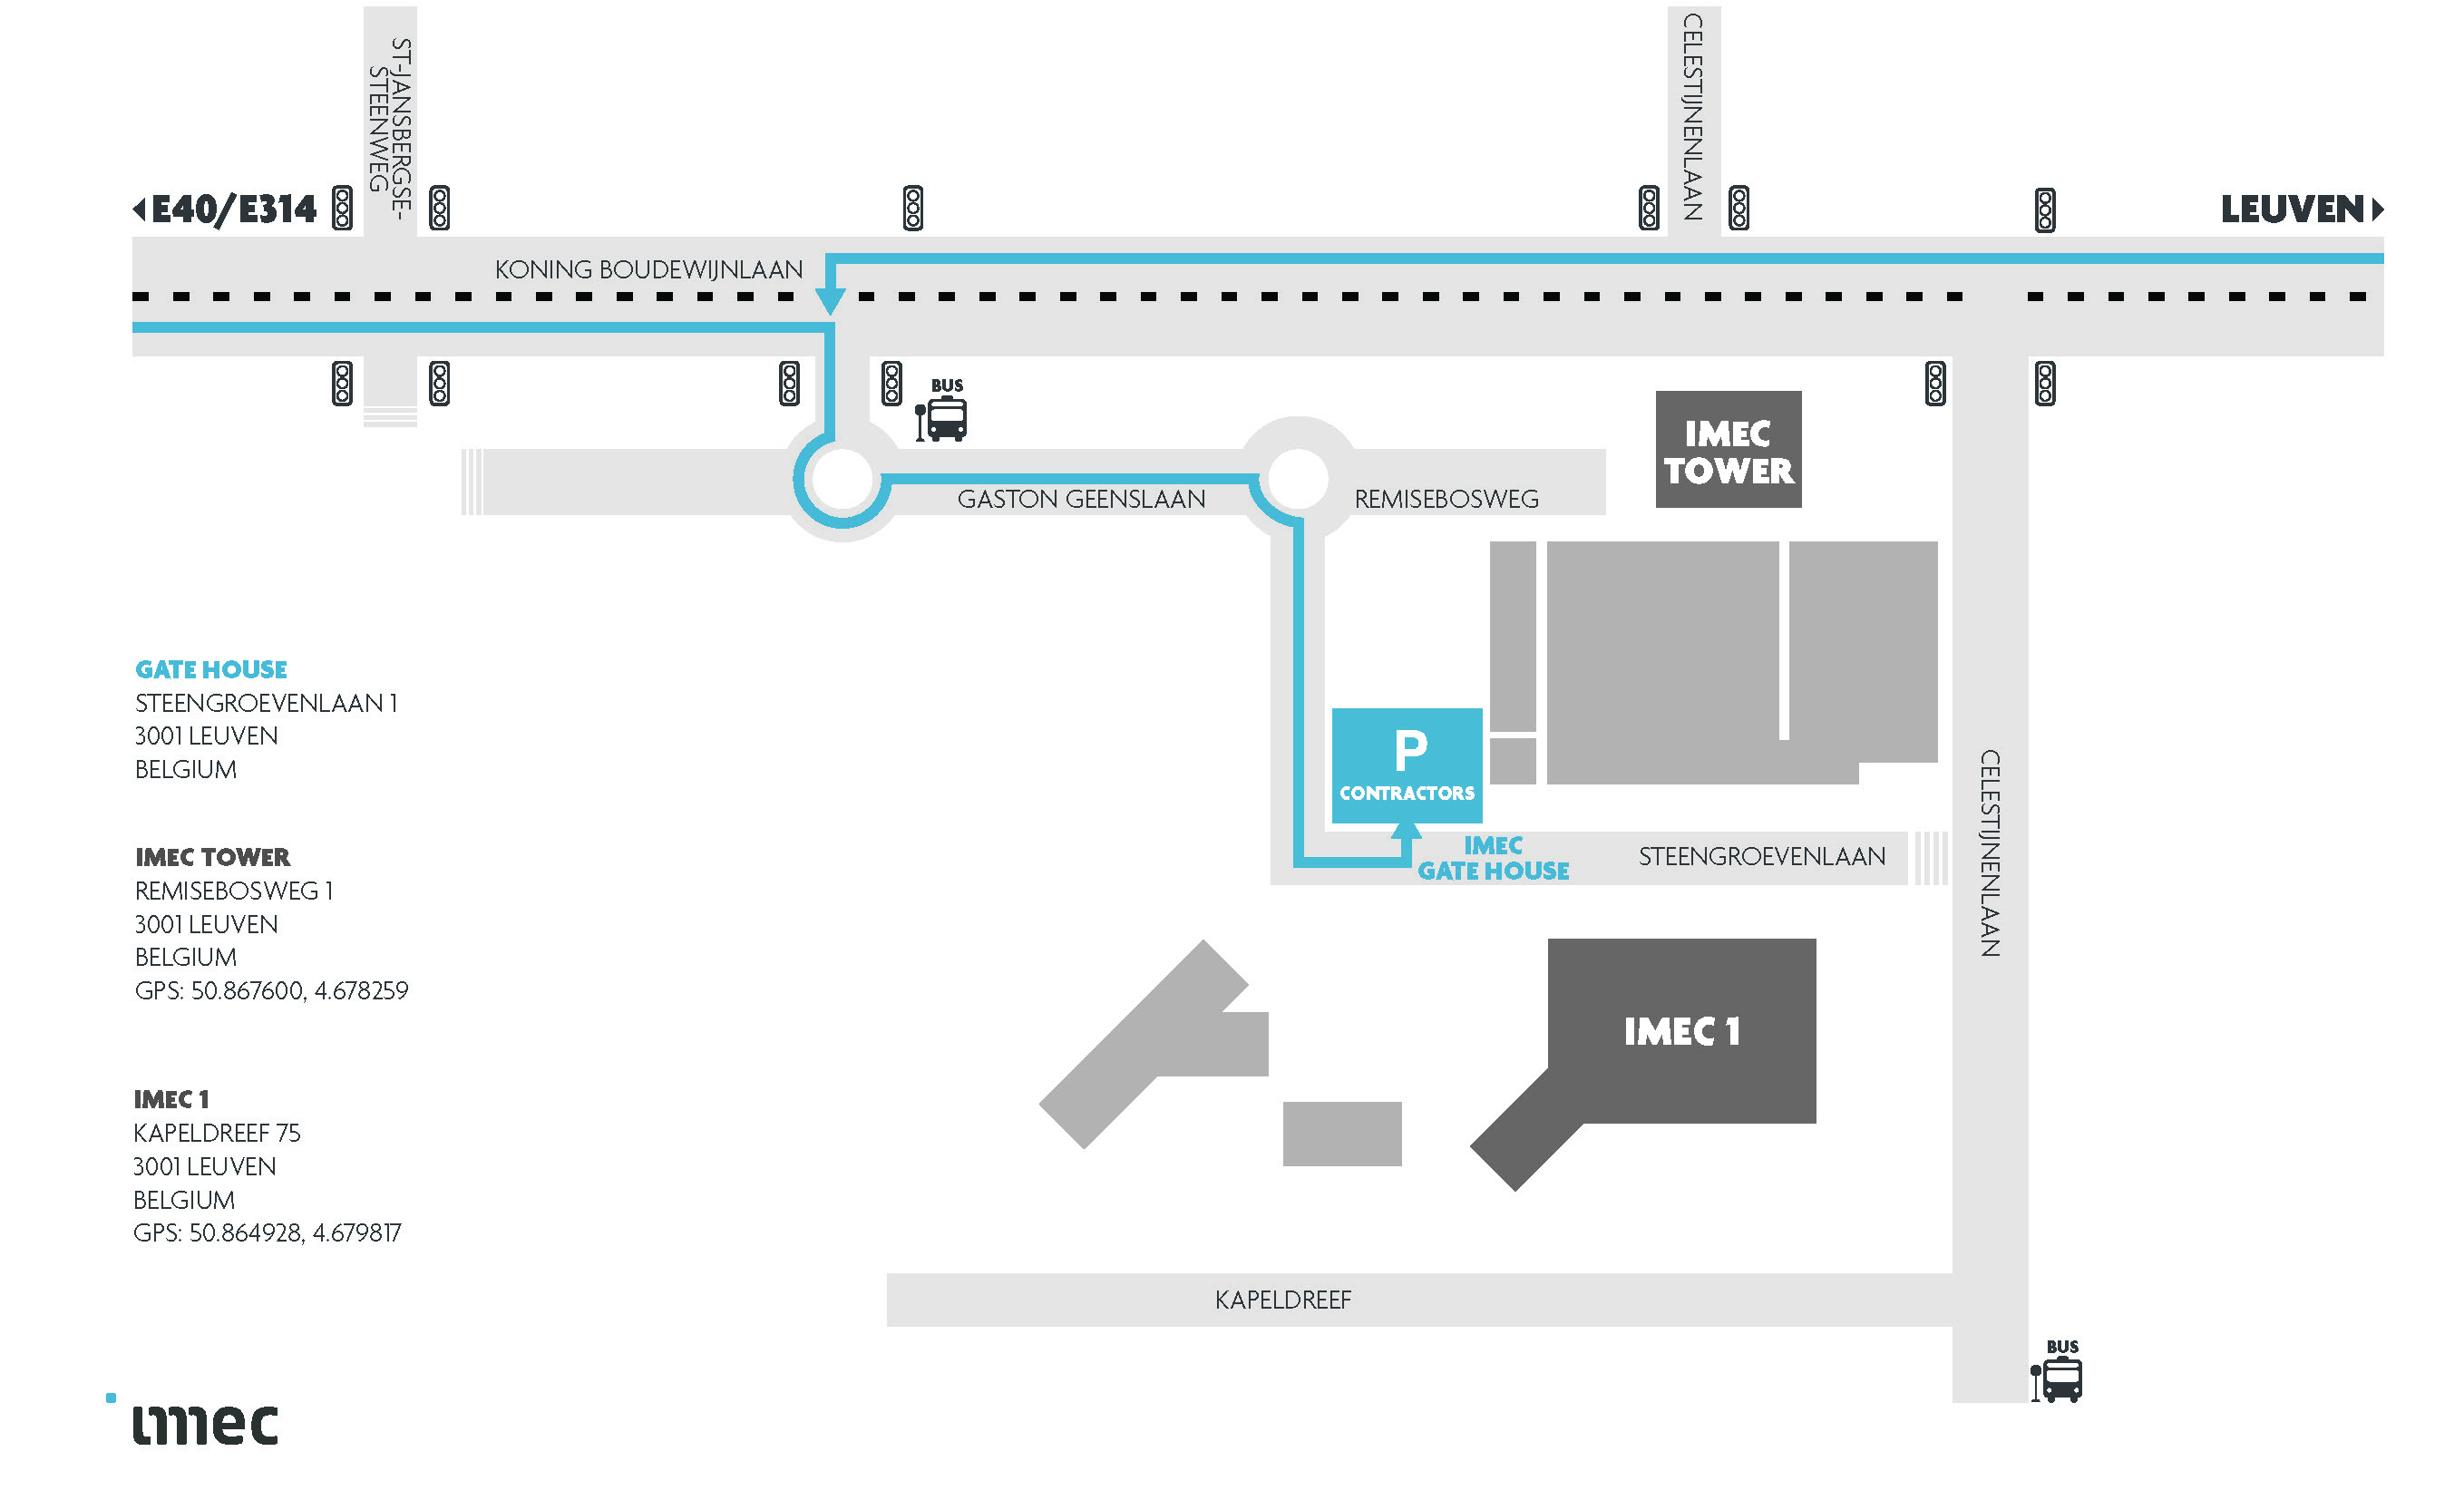 Access to imec - map